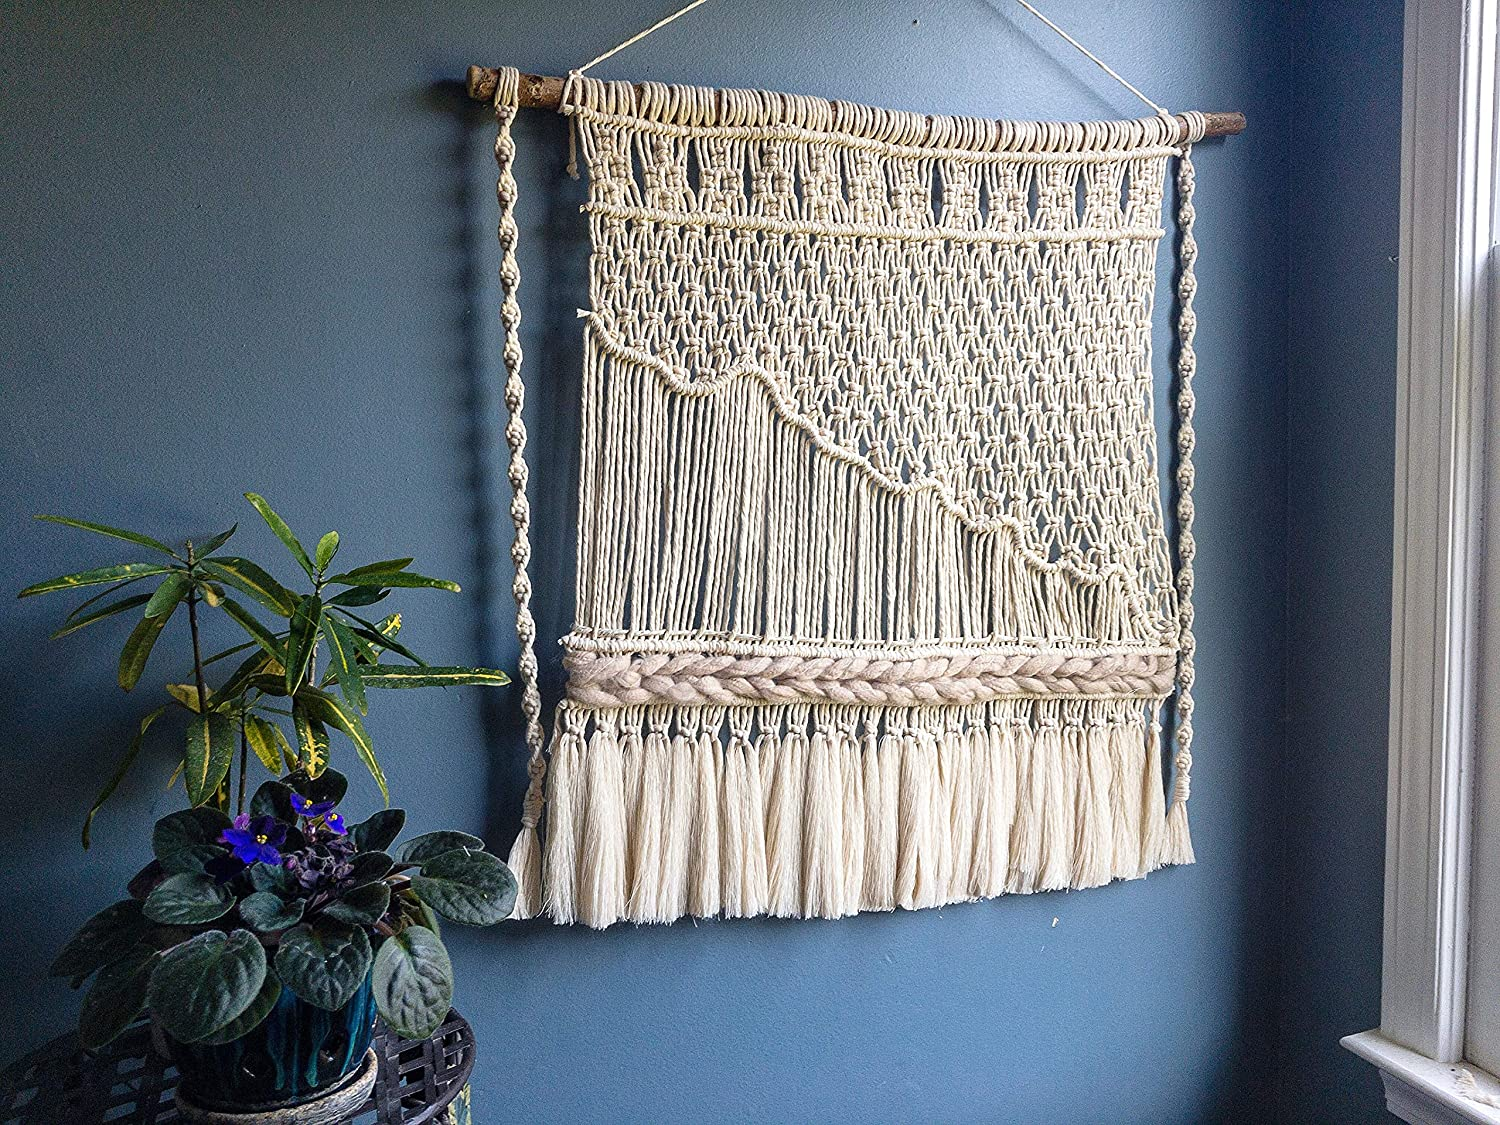 WILD COTTON Fiber Free shipping on posting reviews Arts Excellent Macrame Wall Woven Home Boho Hanging Art